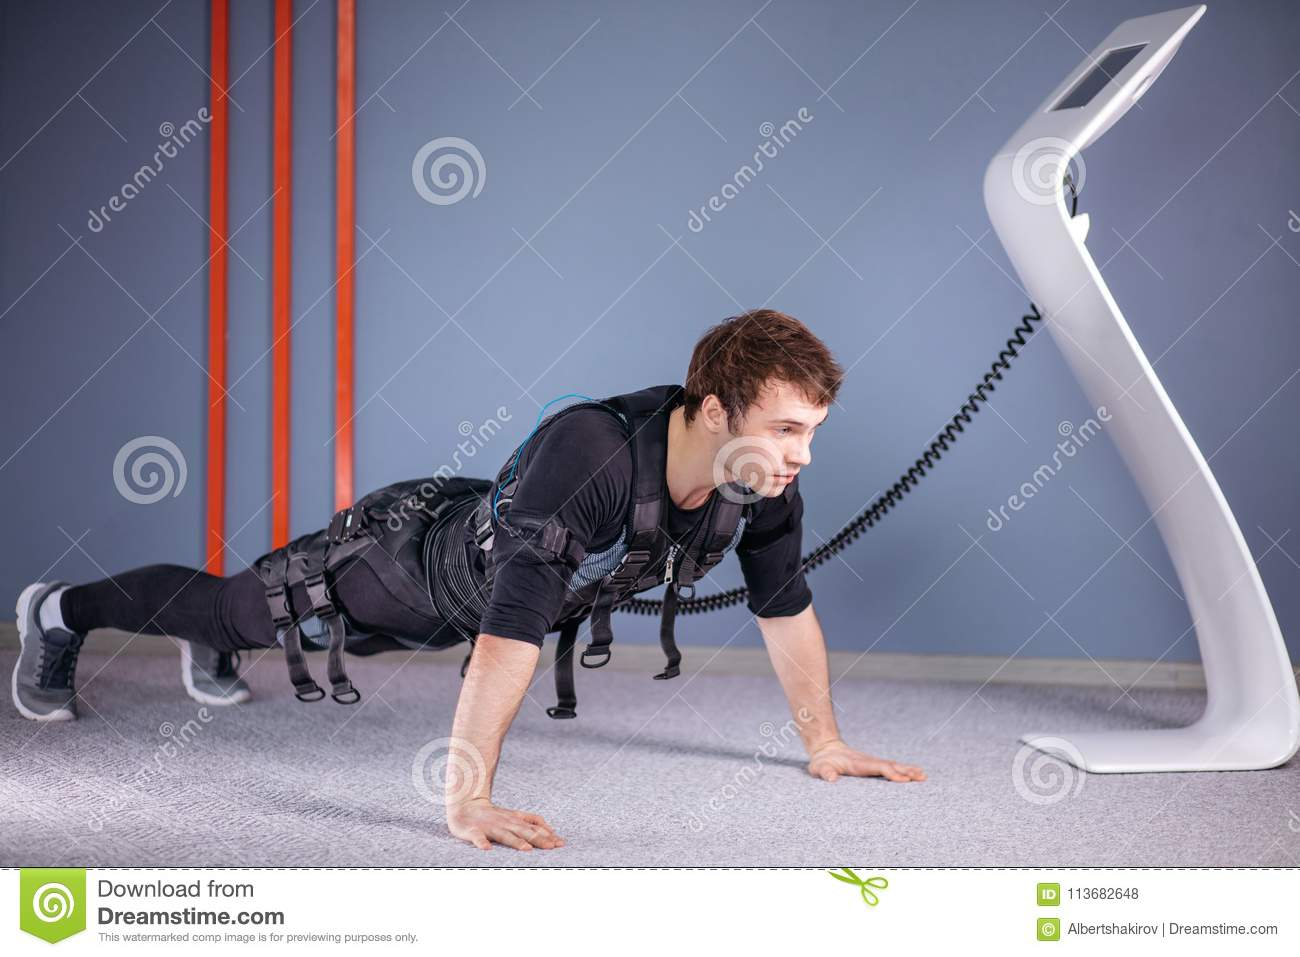 Man in Electrical Muscular Stimulation suits doing plank exercise. EMS